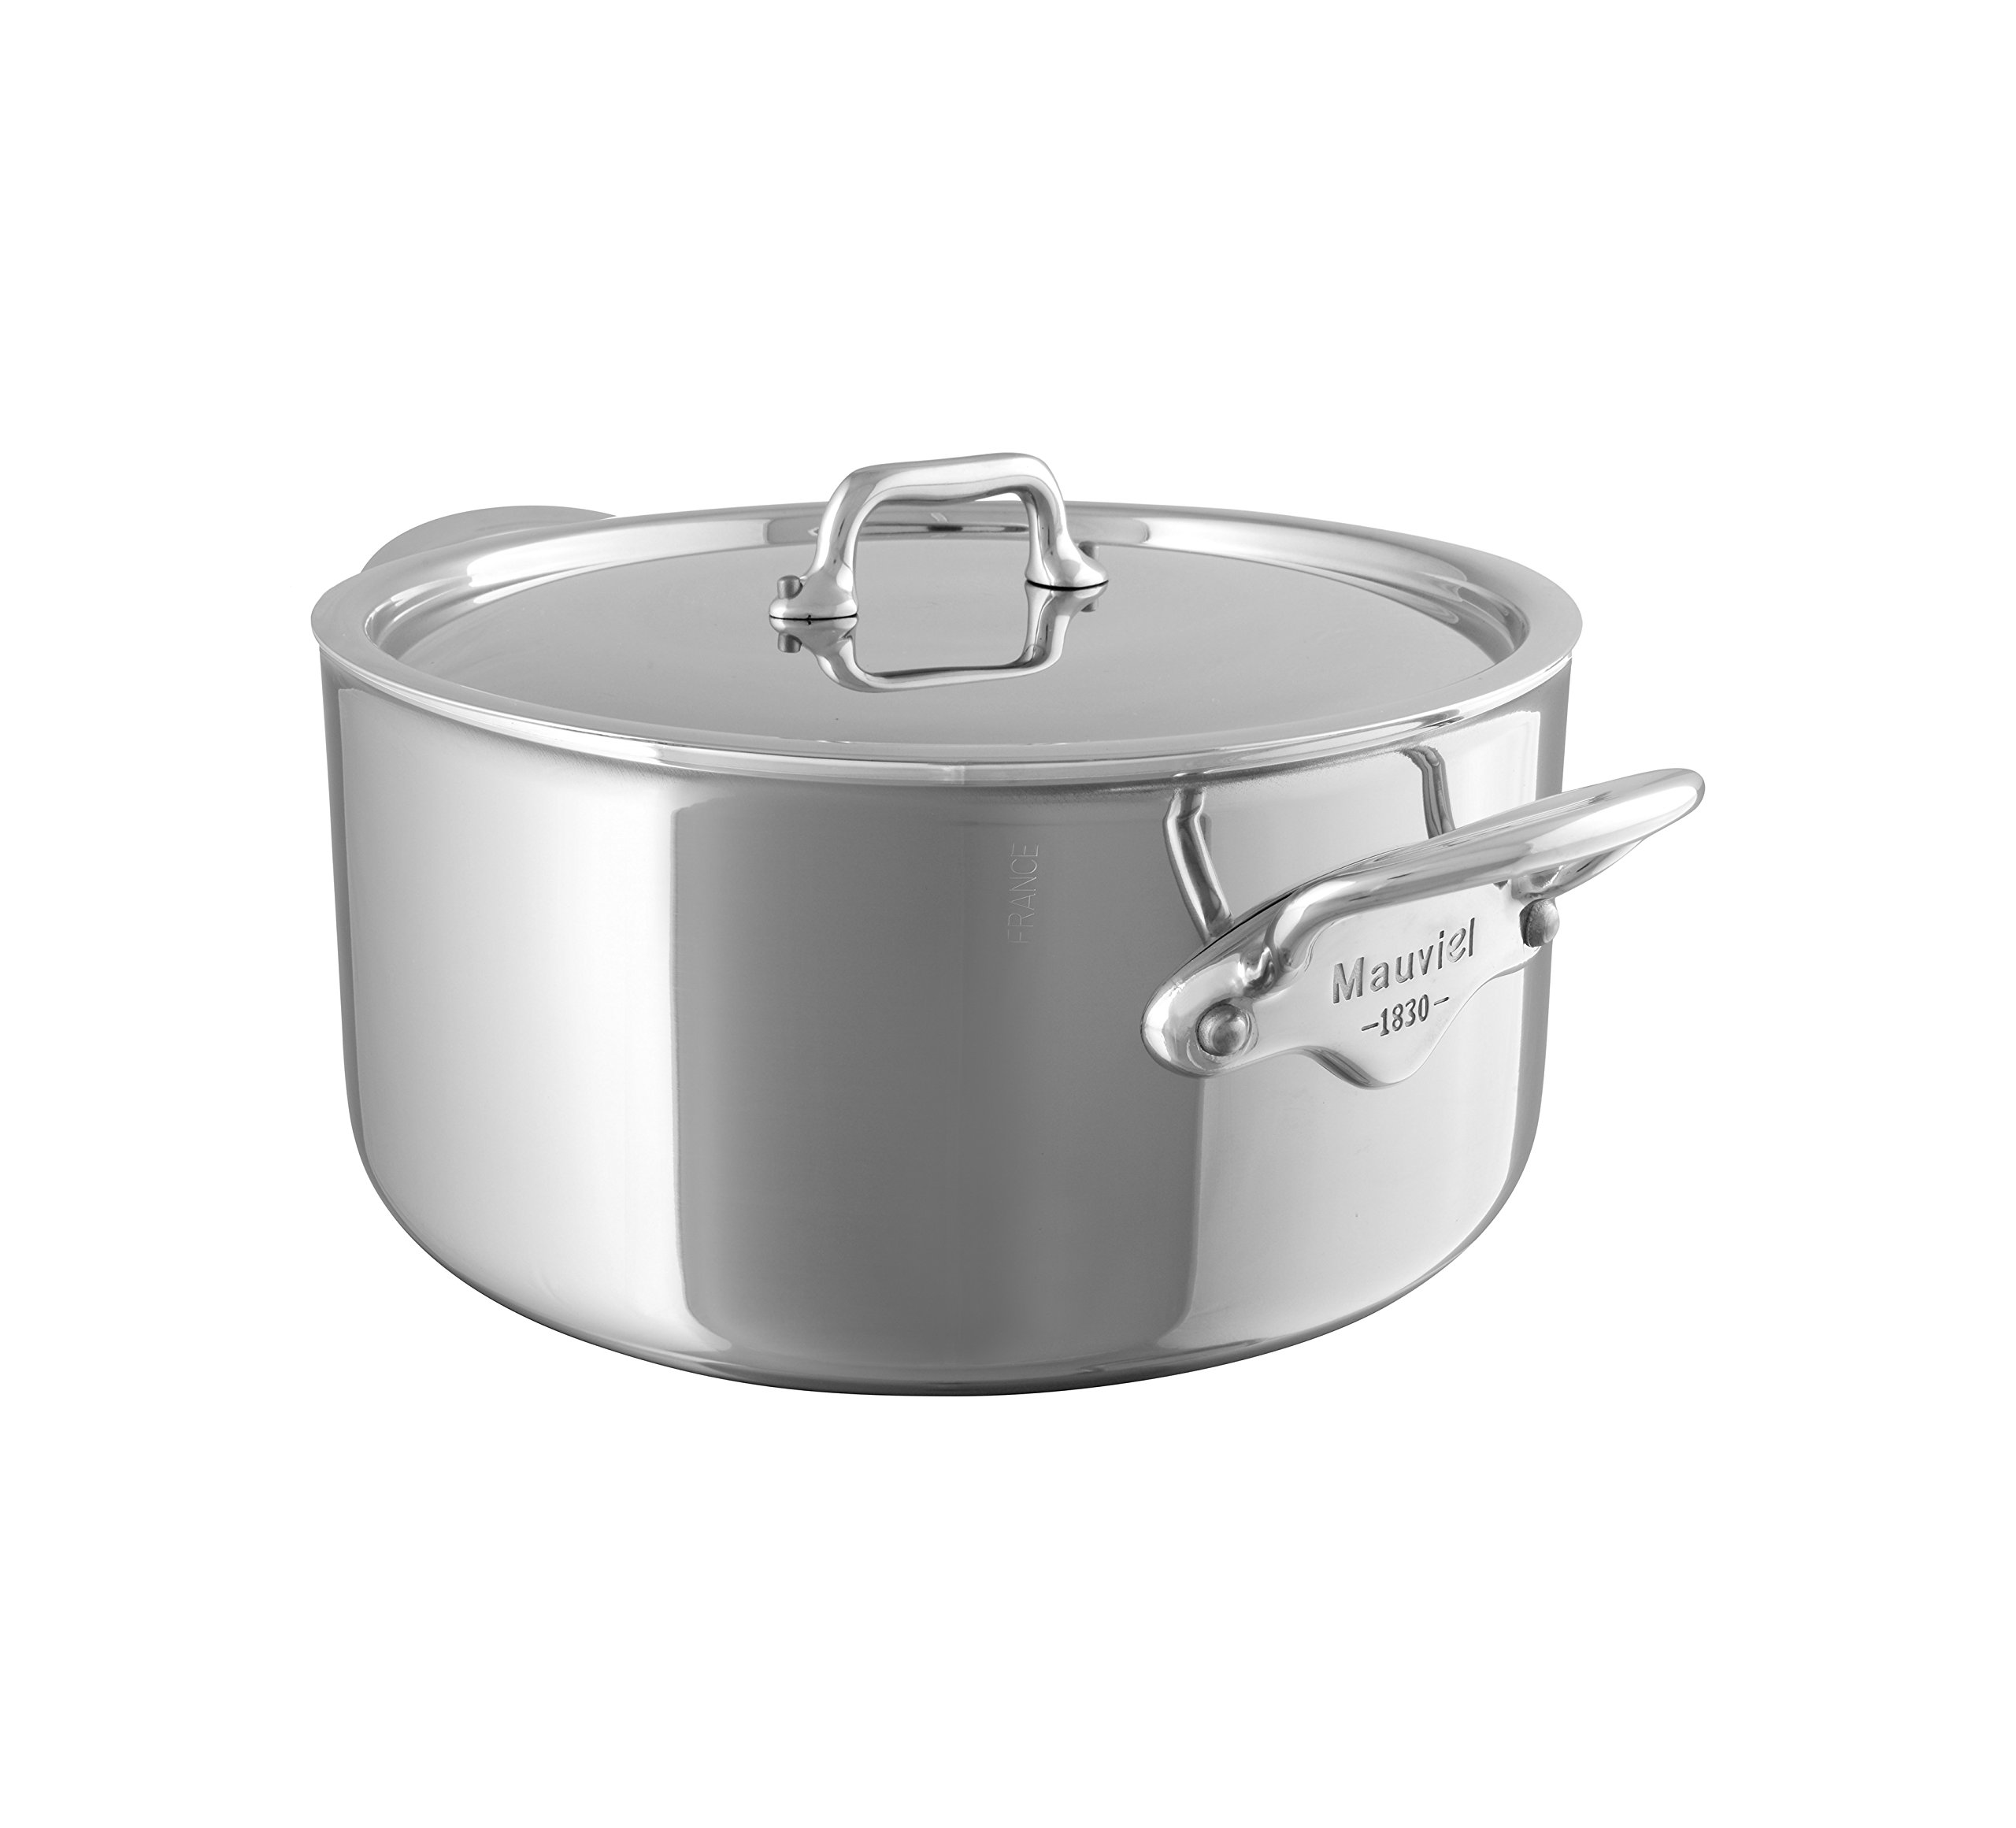 Mauviel Made In France M'Cook 5 Ply Stainless Steel 5231.25 6.4-Quart Stewpan with Lid, Cast Stainless Steel Handle by Mauviel (Image #1)